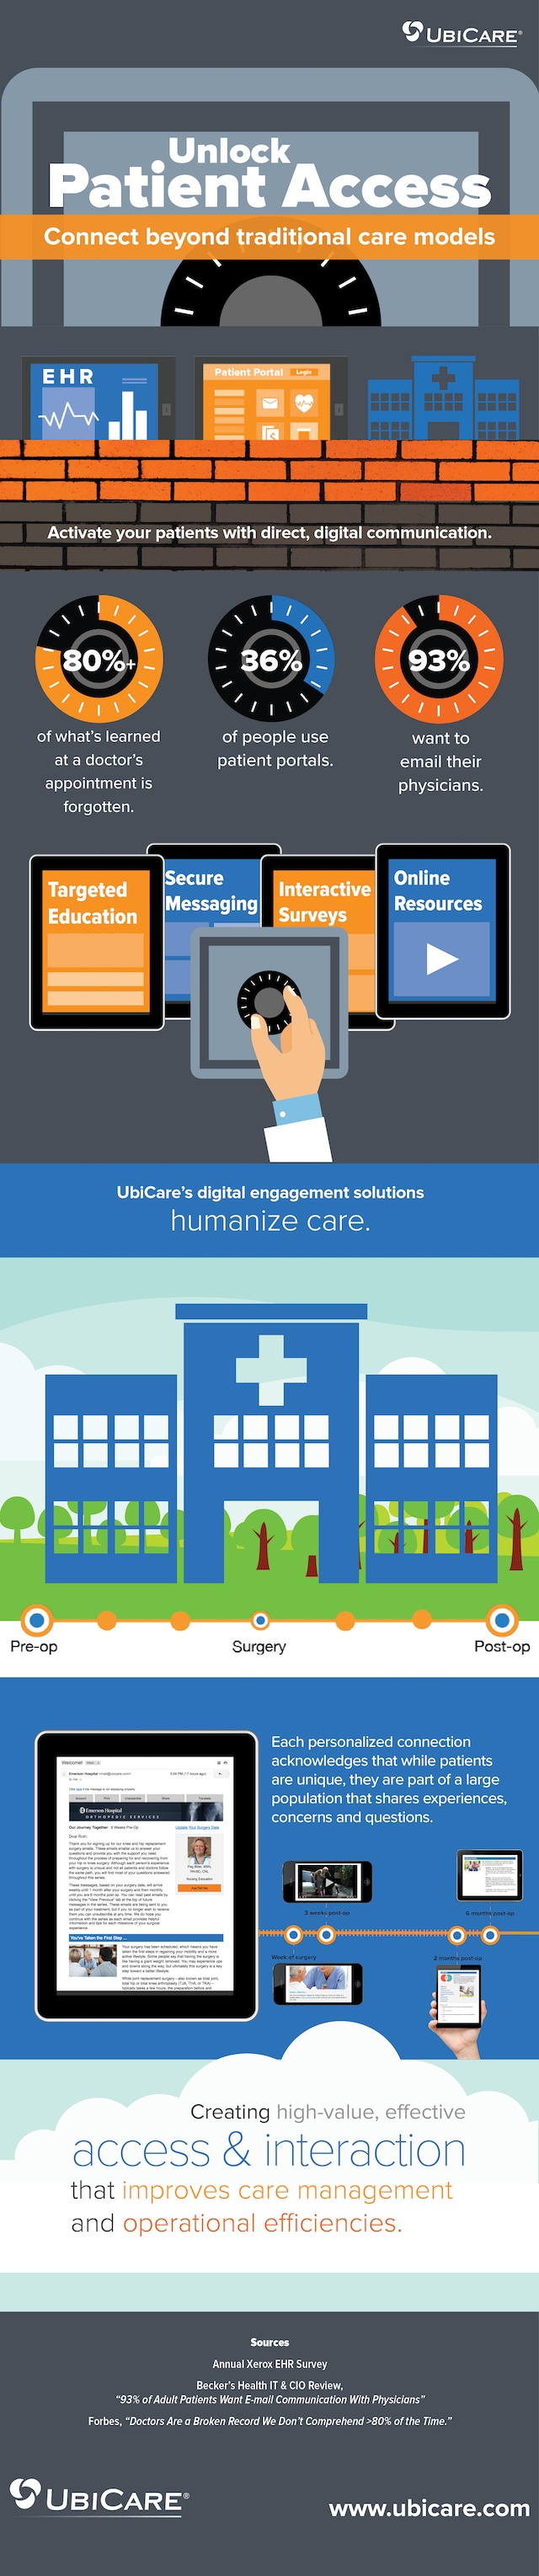 Unlock_Patient_Access_infographic_640px.jpeg